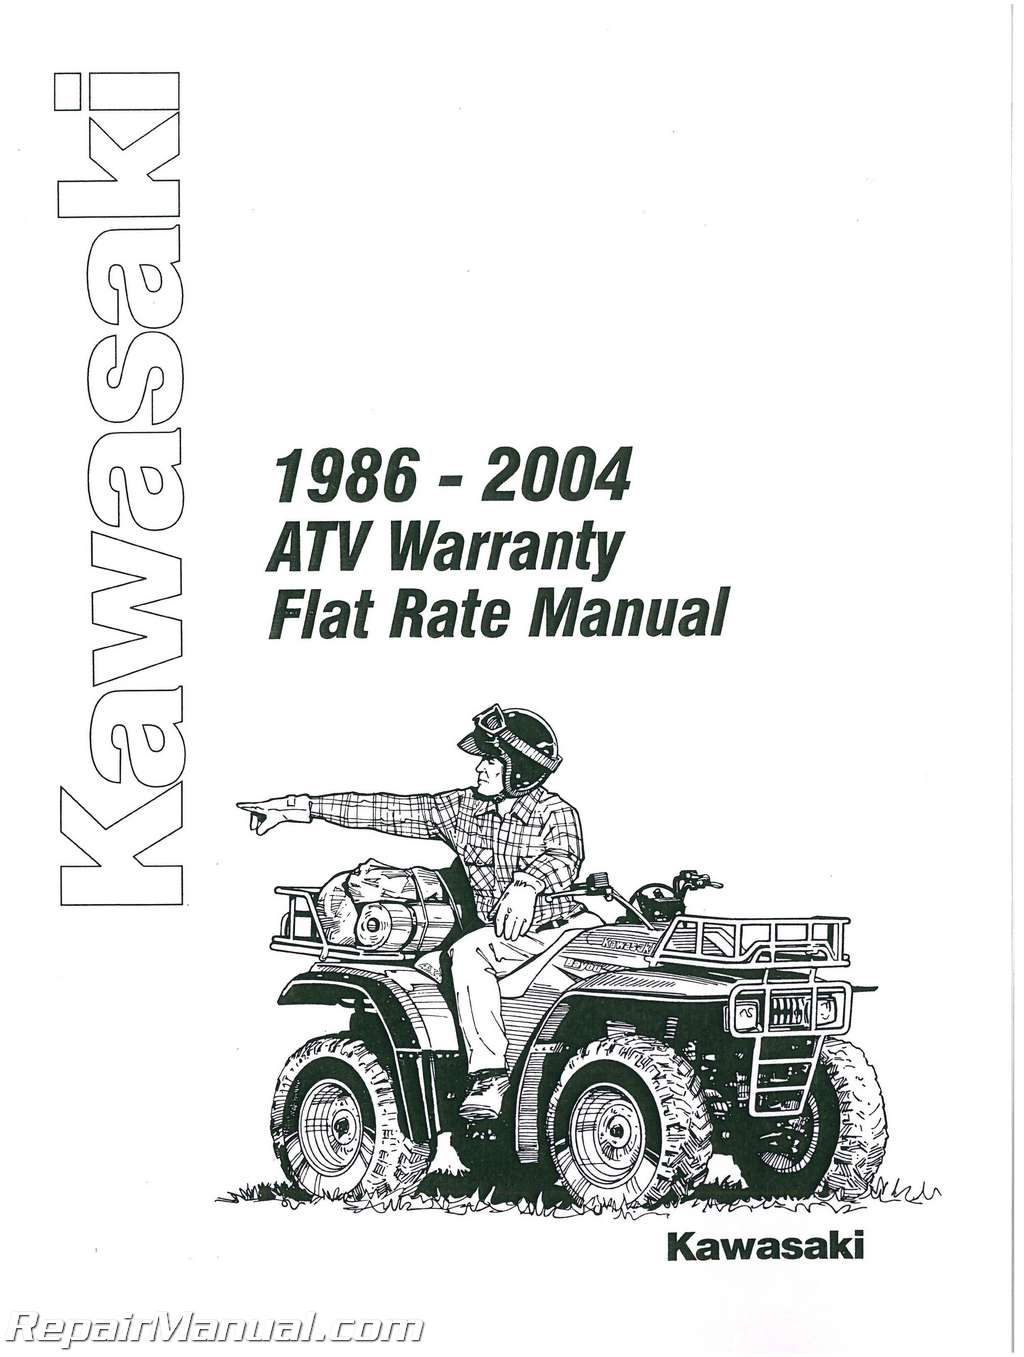 Kawasaki ATV Warranty Flat Rate Manual 1986-2004